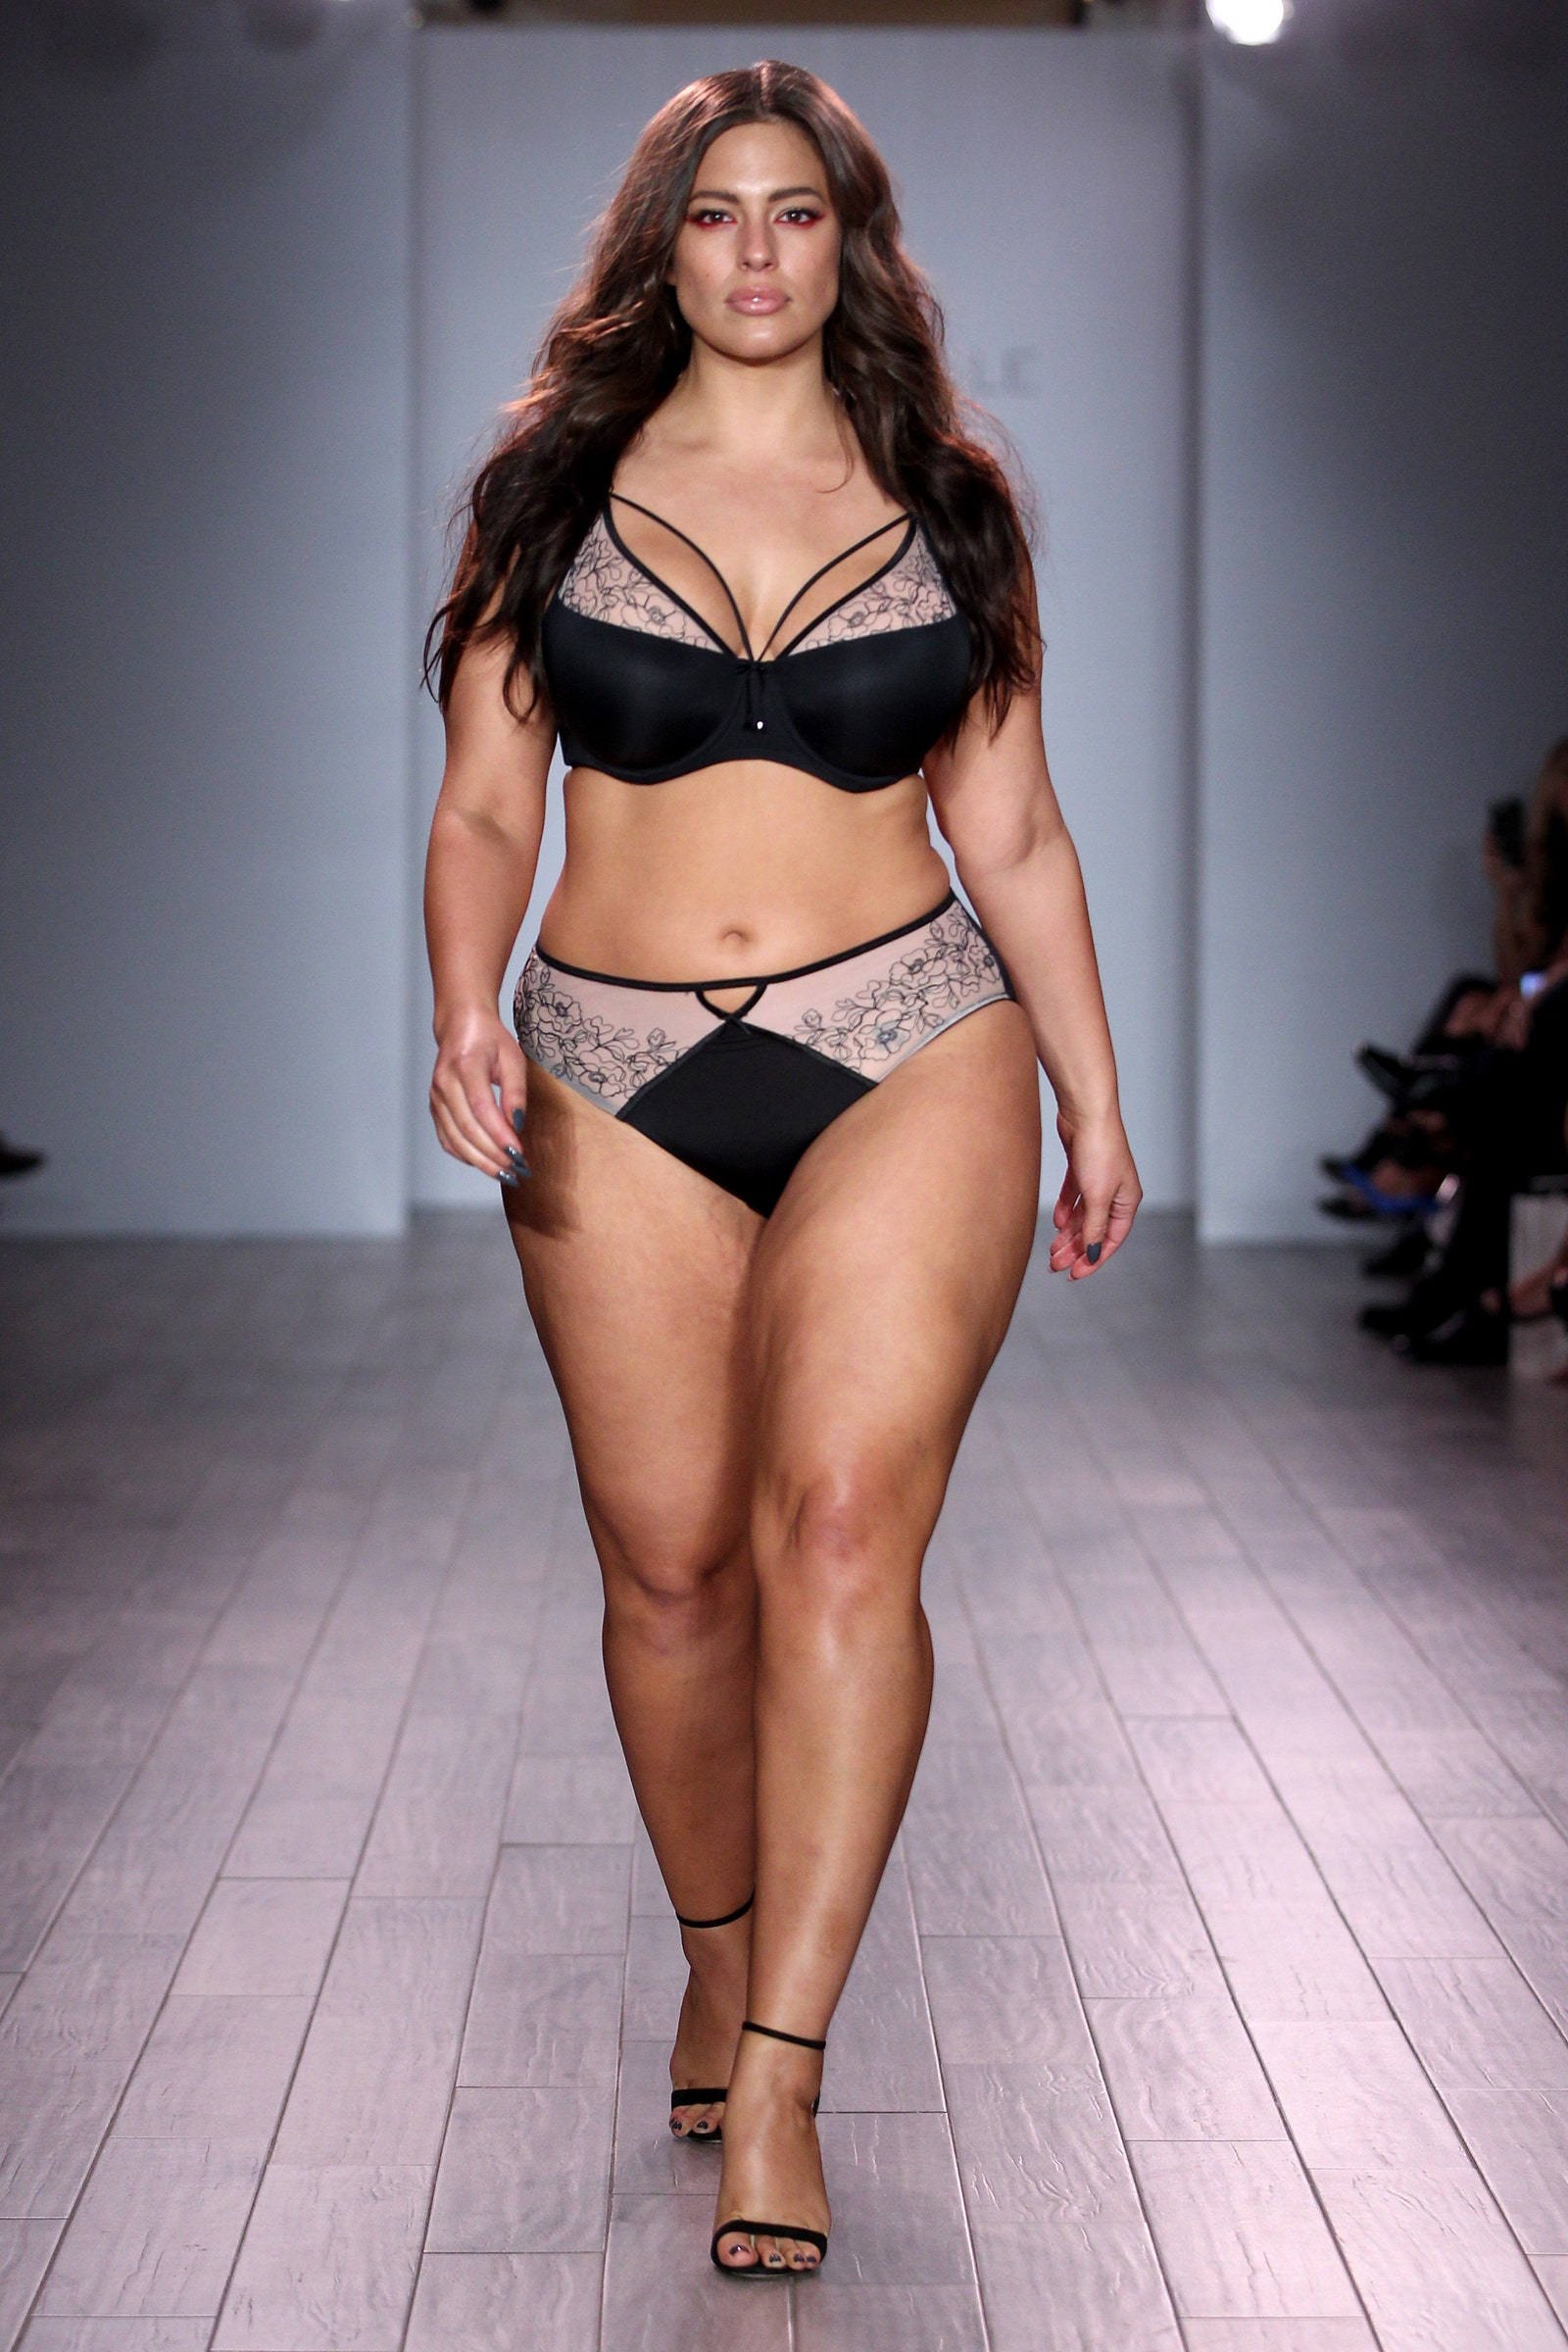 Ashley Graham Phone number, Email Id, Fanmail, Instagram, Tiktok, and Contact Details